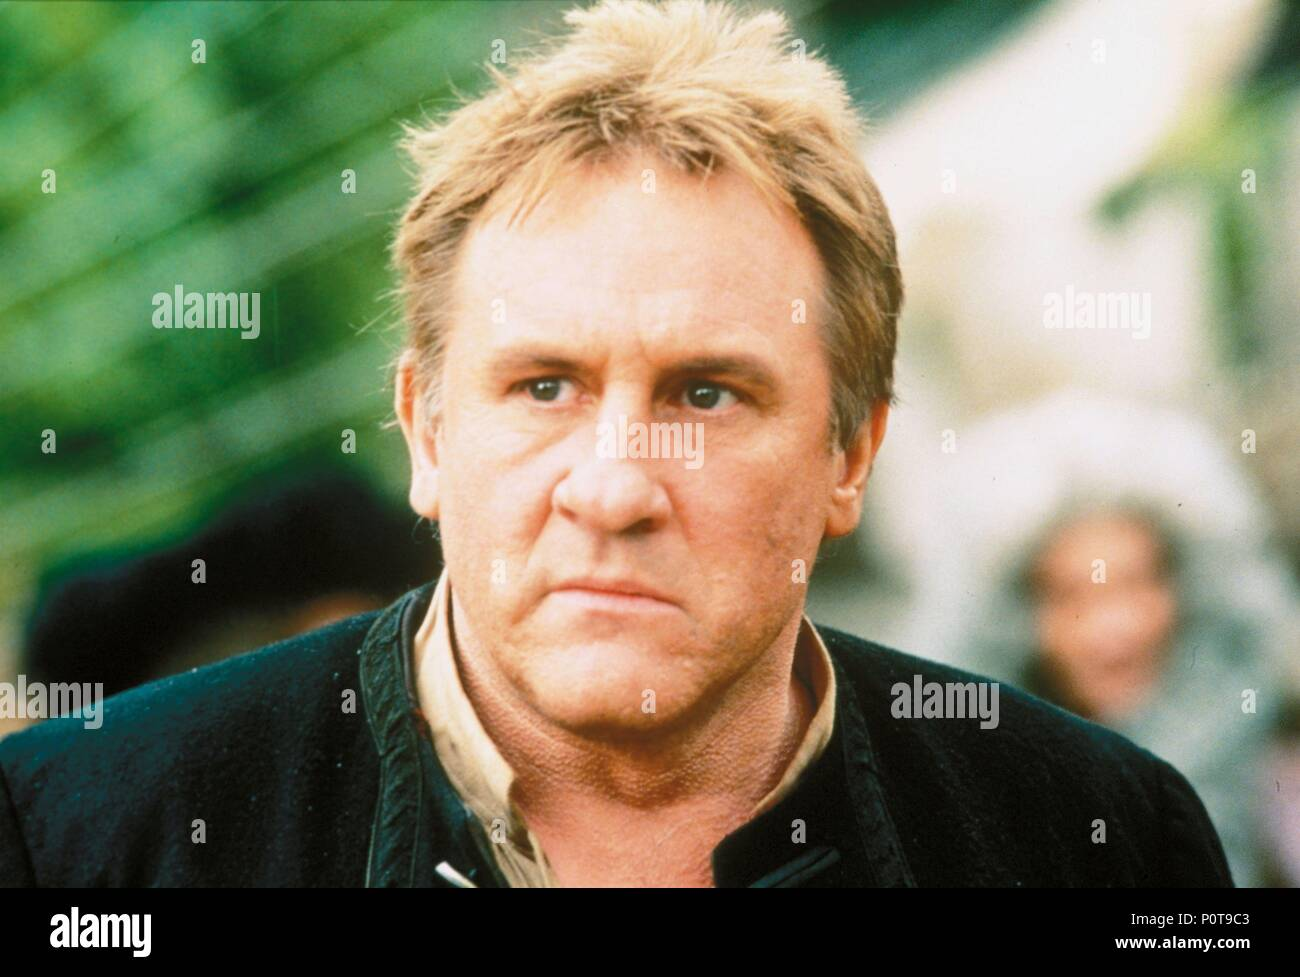 Original Film Title: VATEL.  English Title: VATEL.  Film Director: ROLAND JOFFE.  Year: 2000.  Stars: GERARD DEPARDIEU. Copyright: Editorial inside use only. This is a publicly distributed handout. Access rights only, no license of copyright provided. Mandatory authorization to Visual Icon (www.visual-icon.com) is required for the reproduction of this image. Credit: GAUMONT / Album Stock Photo